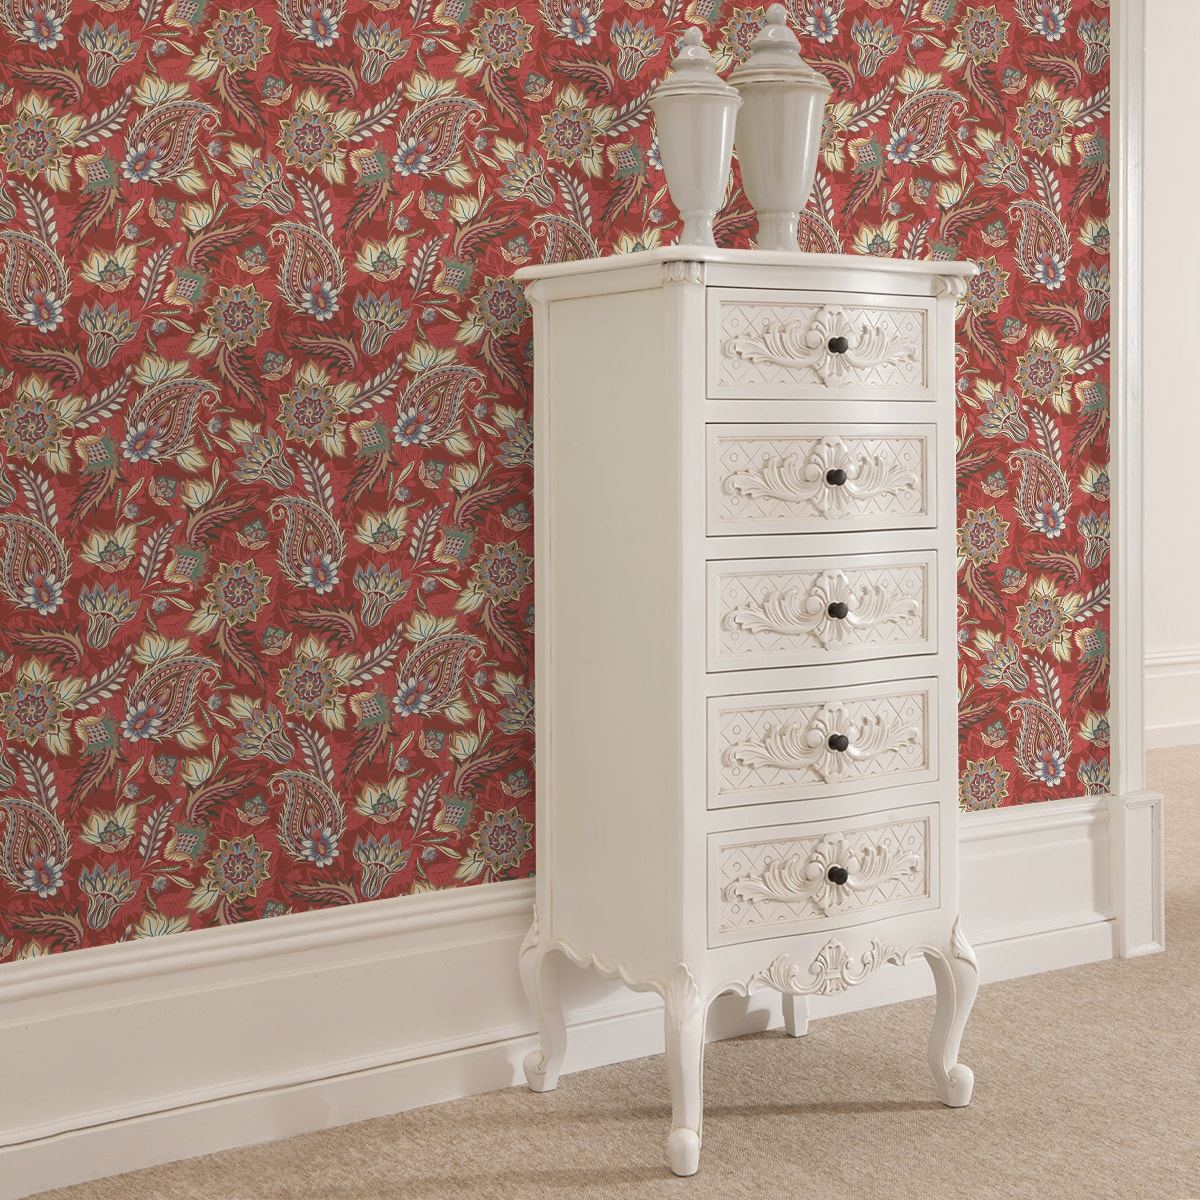 Edle Wandfarben Rote Edle Design Tapete Quotclassic Paisley Quot Wohnzimmer Gmm